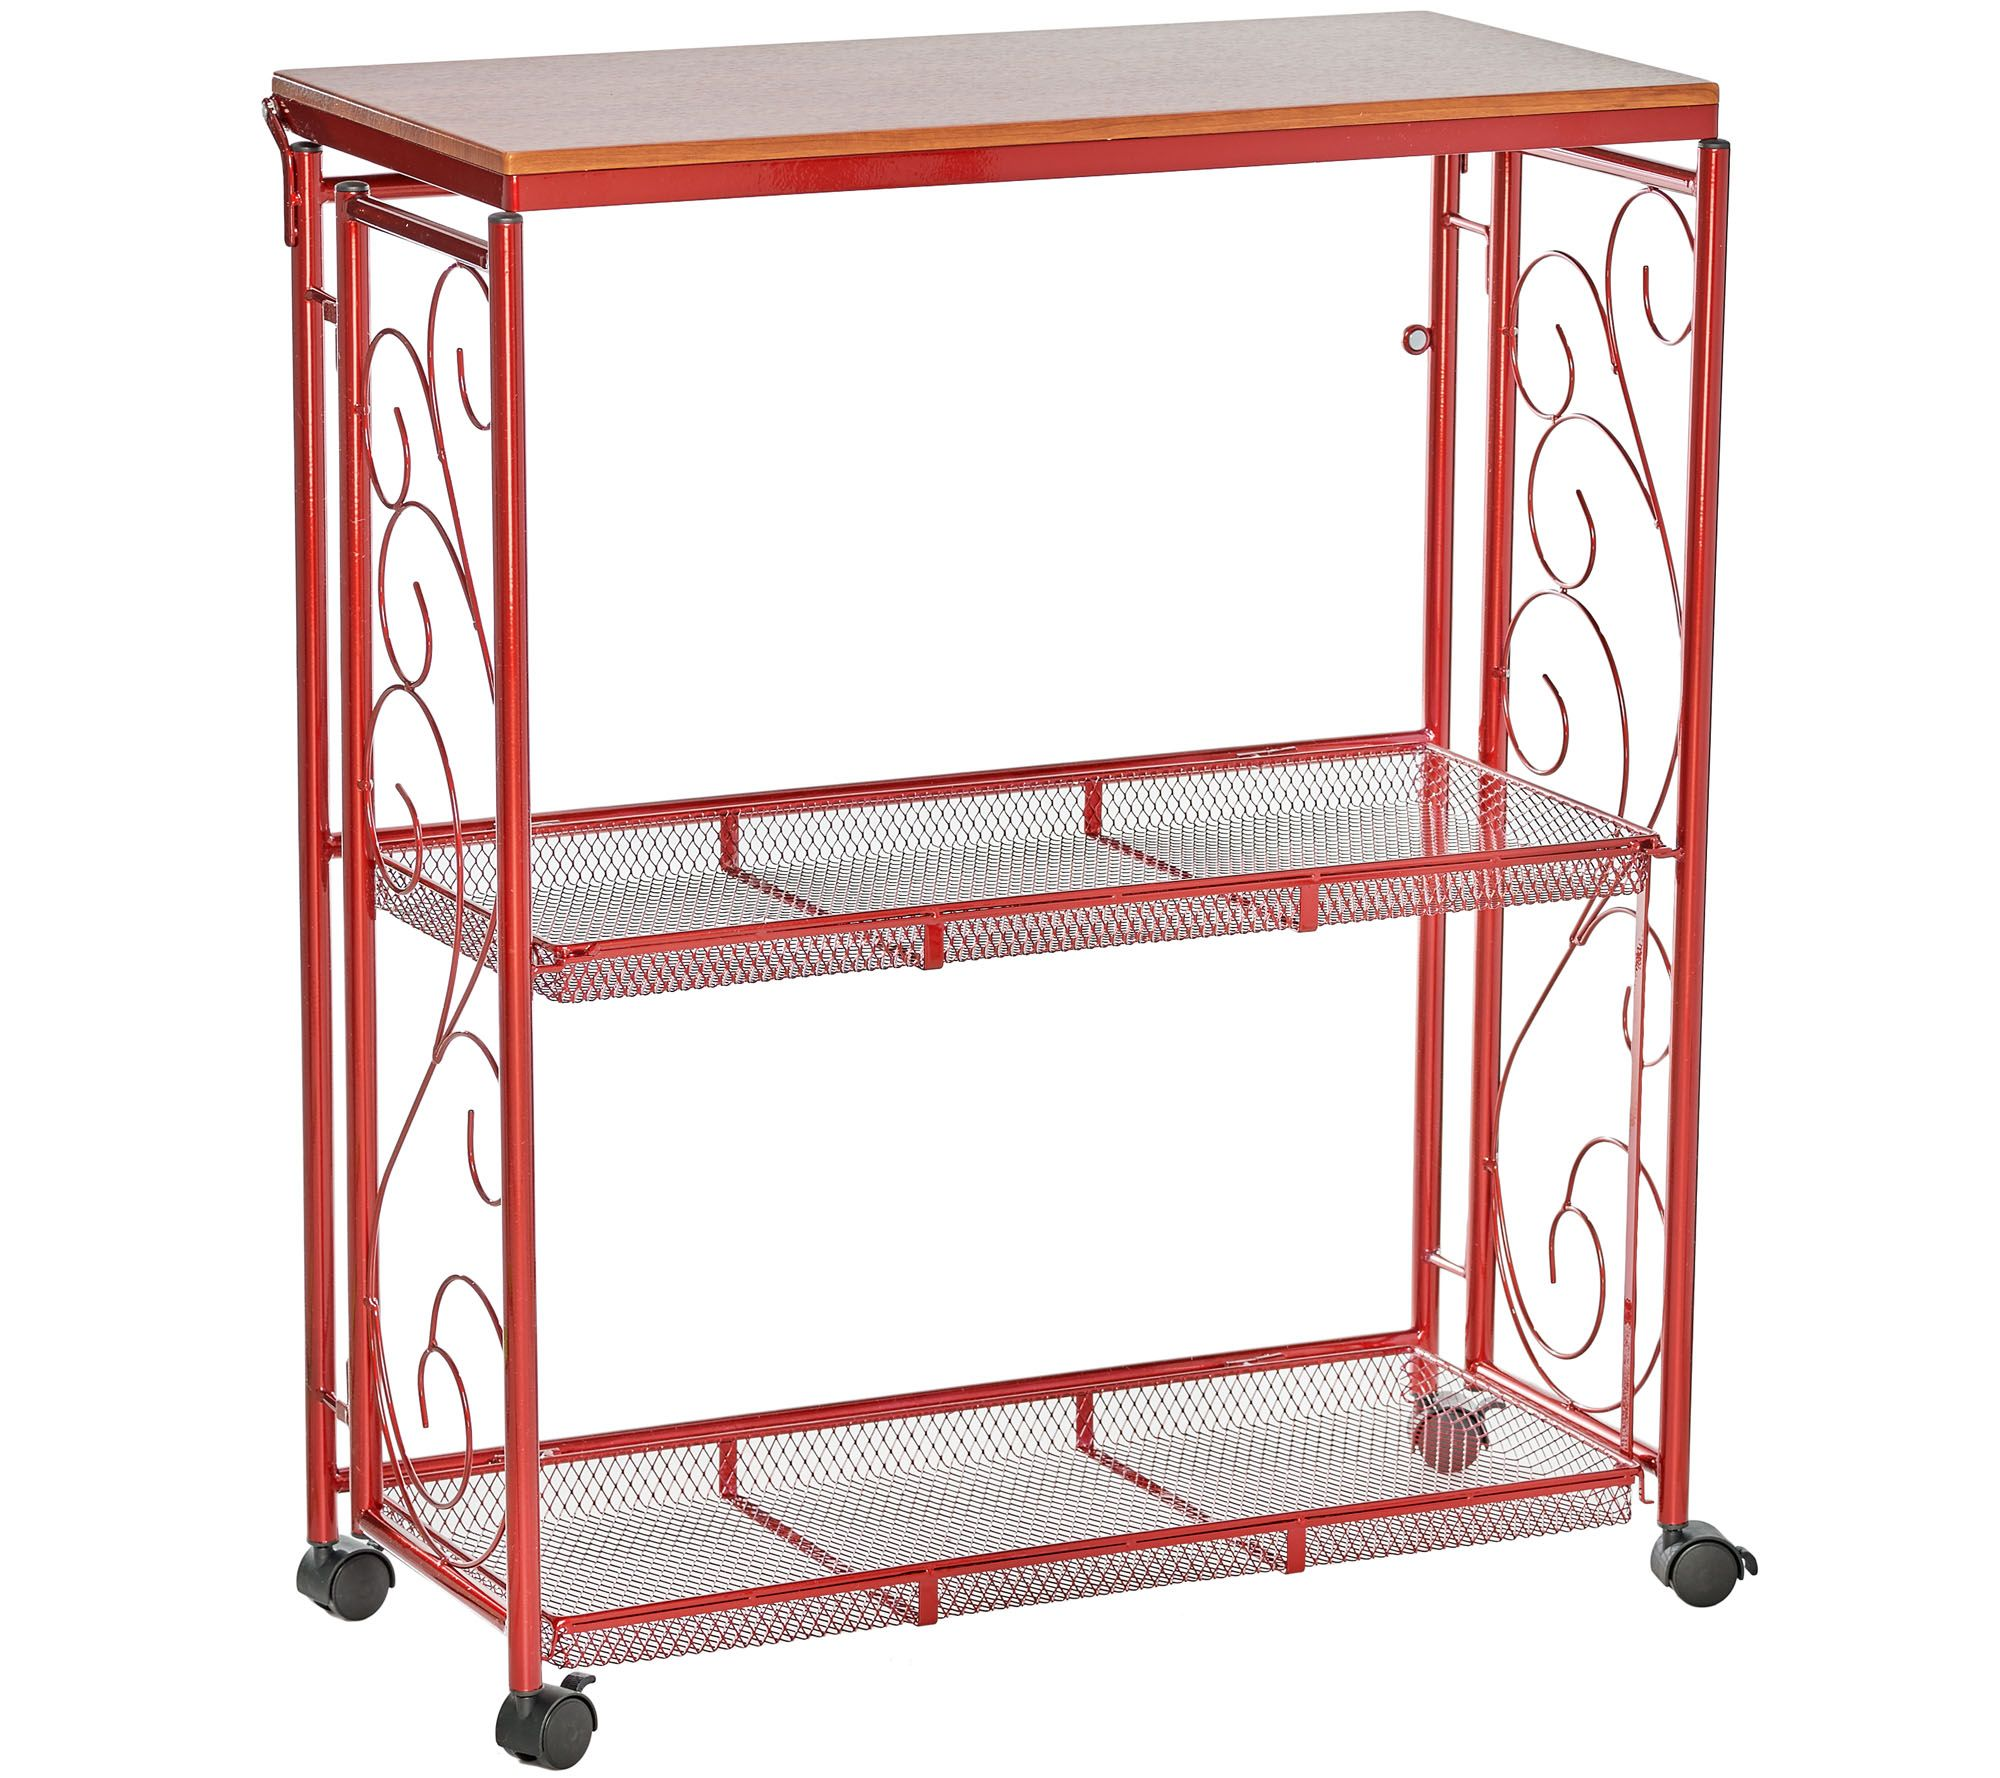 Kitchen Carts — Storage & Organization — Kitchen & Food — QVC.com